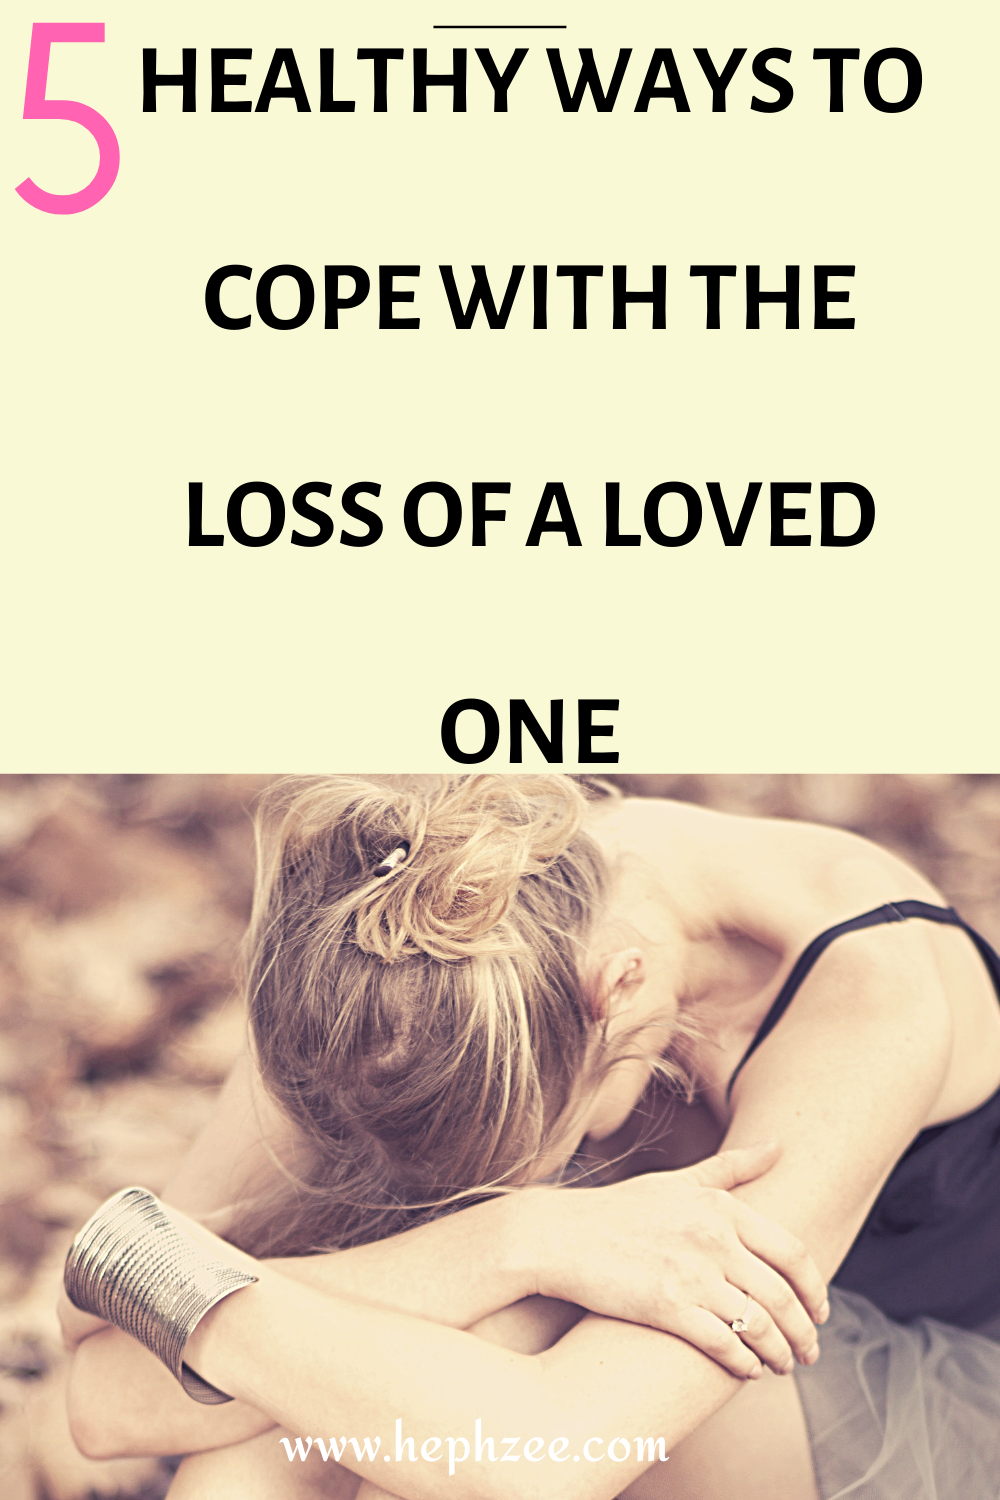 Healthy ways to deal with grief